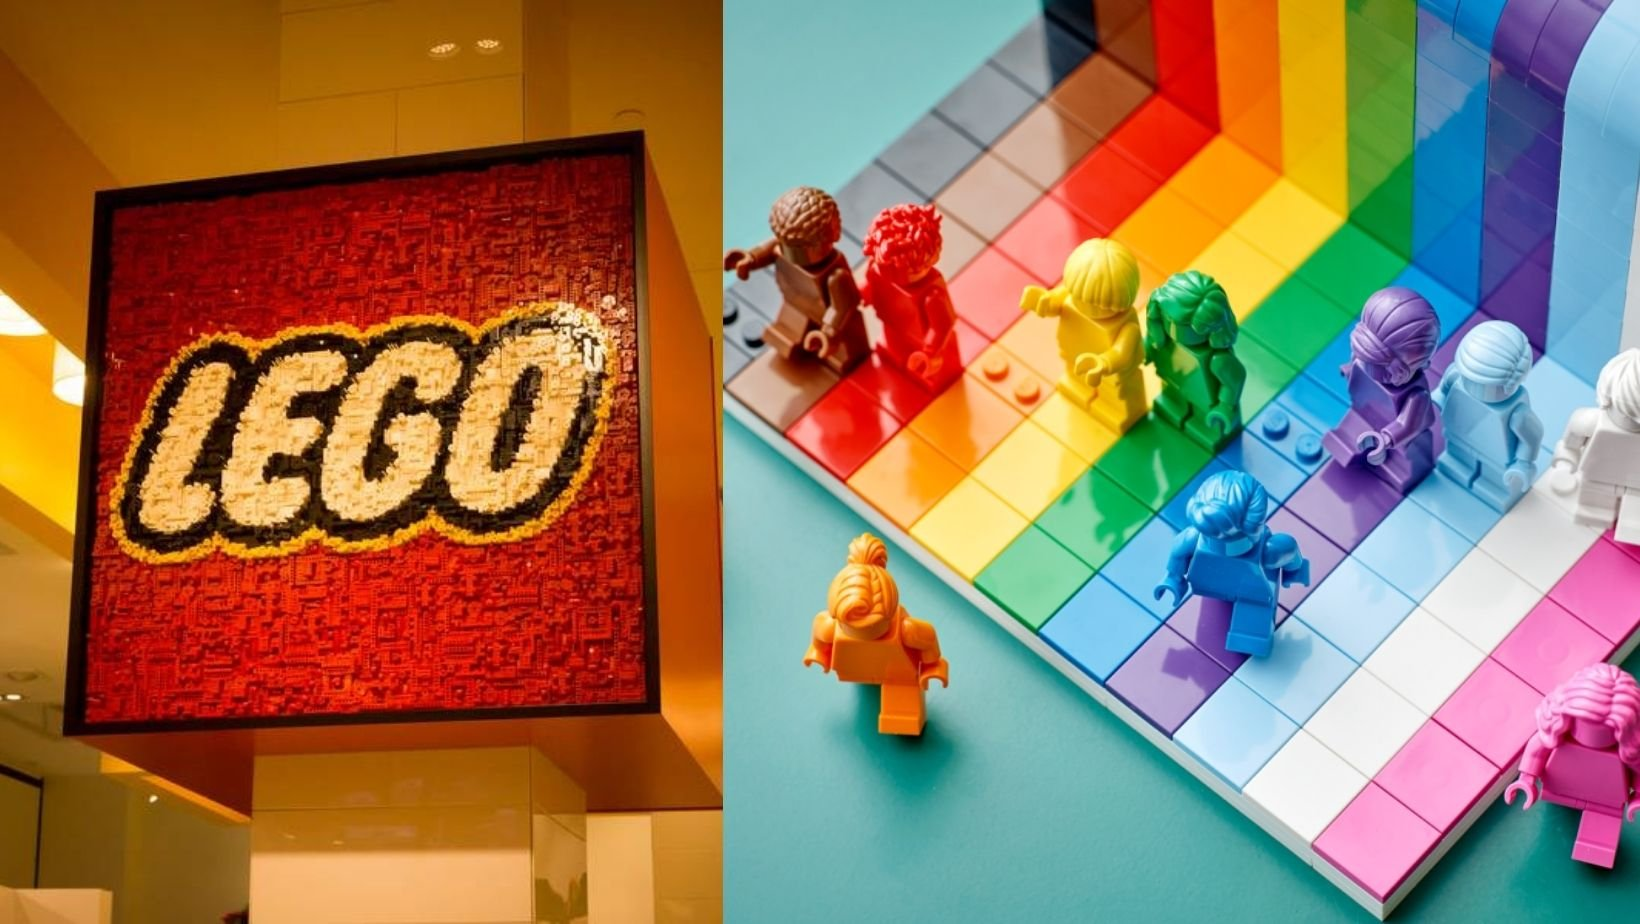 1 117.jpg?resize=1200,630 - Lego Unveils It's First LGBTQ+ Set Titled 'Everyone Is Awesome' To Celebrate Pride Month